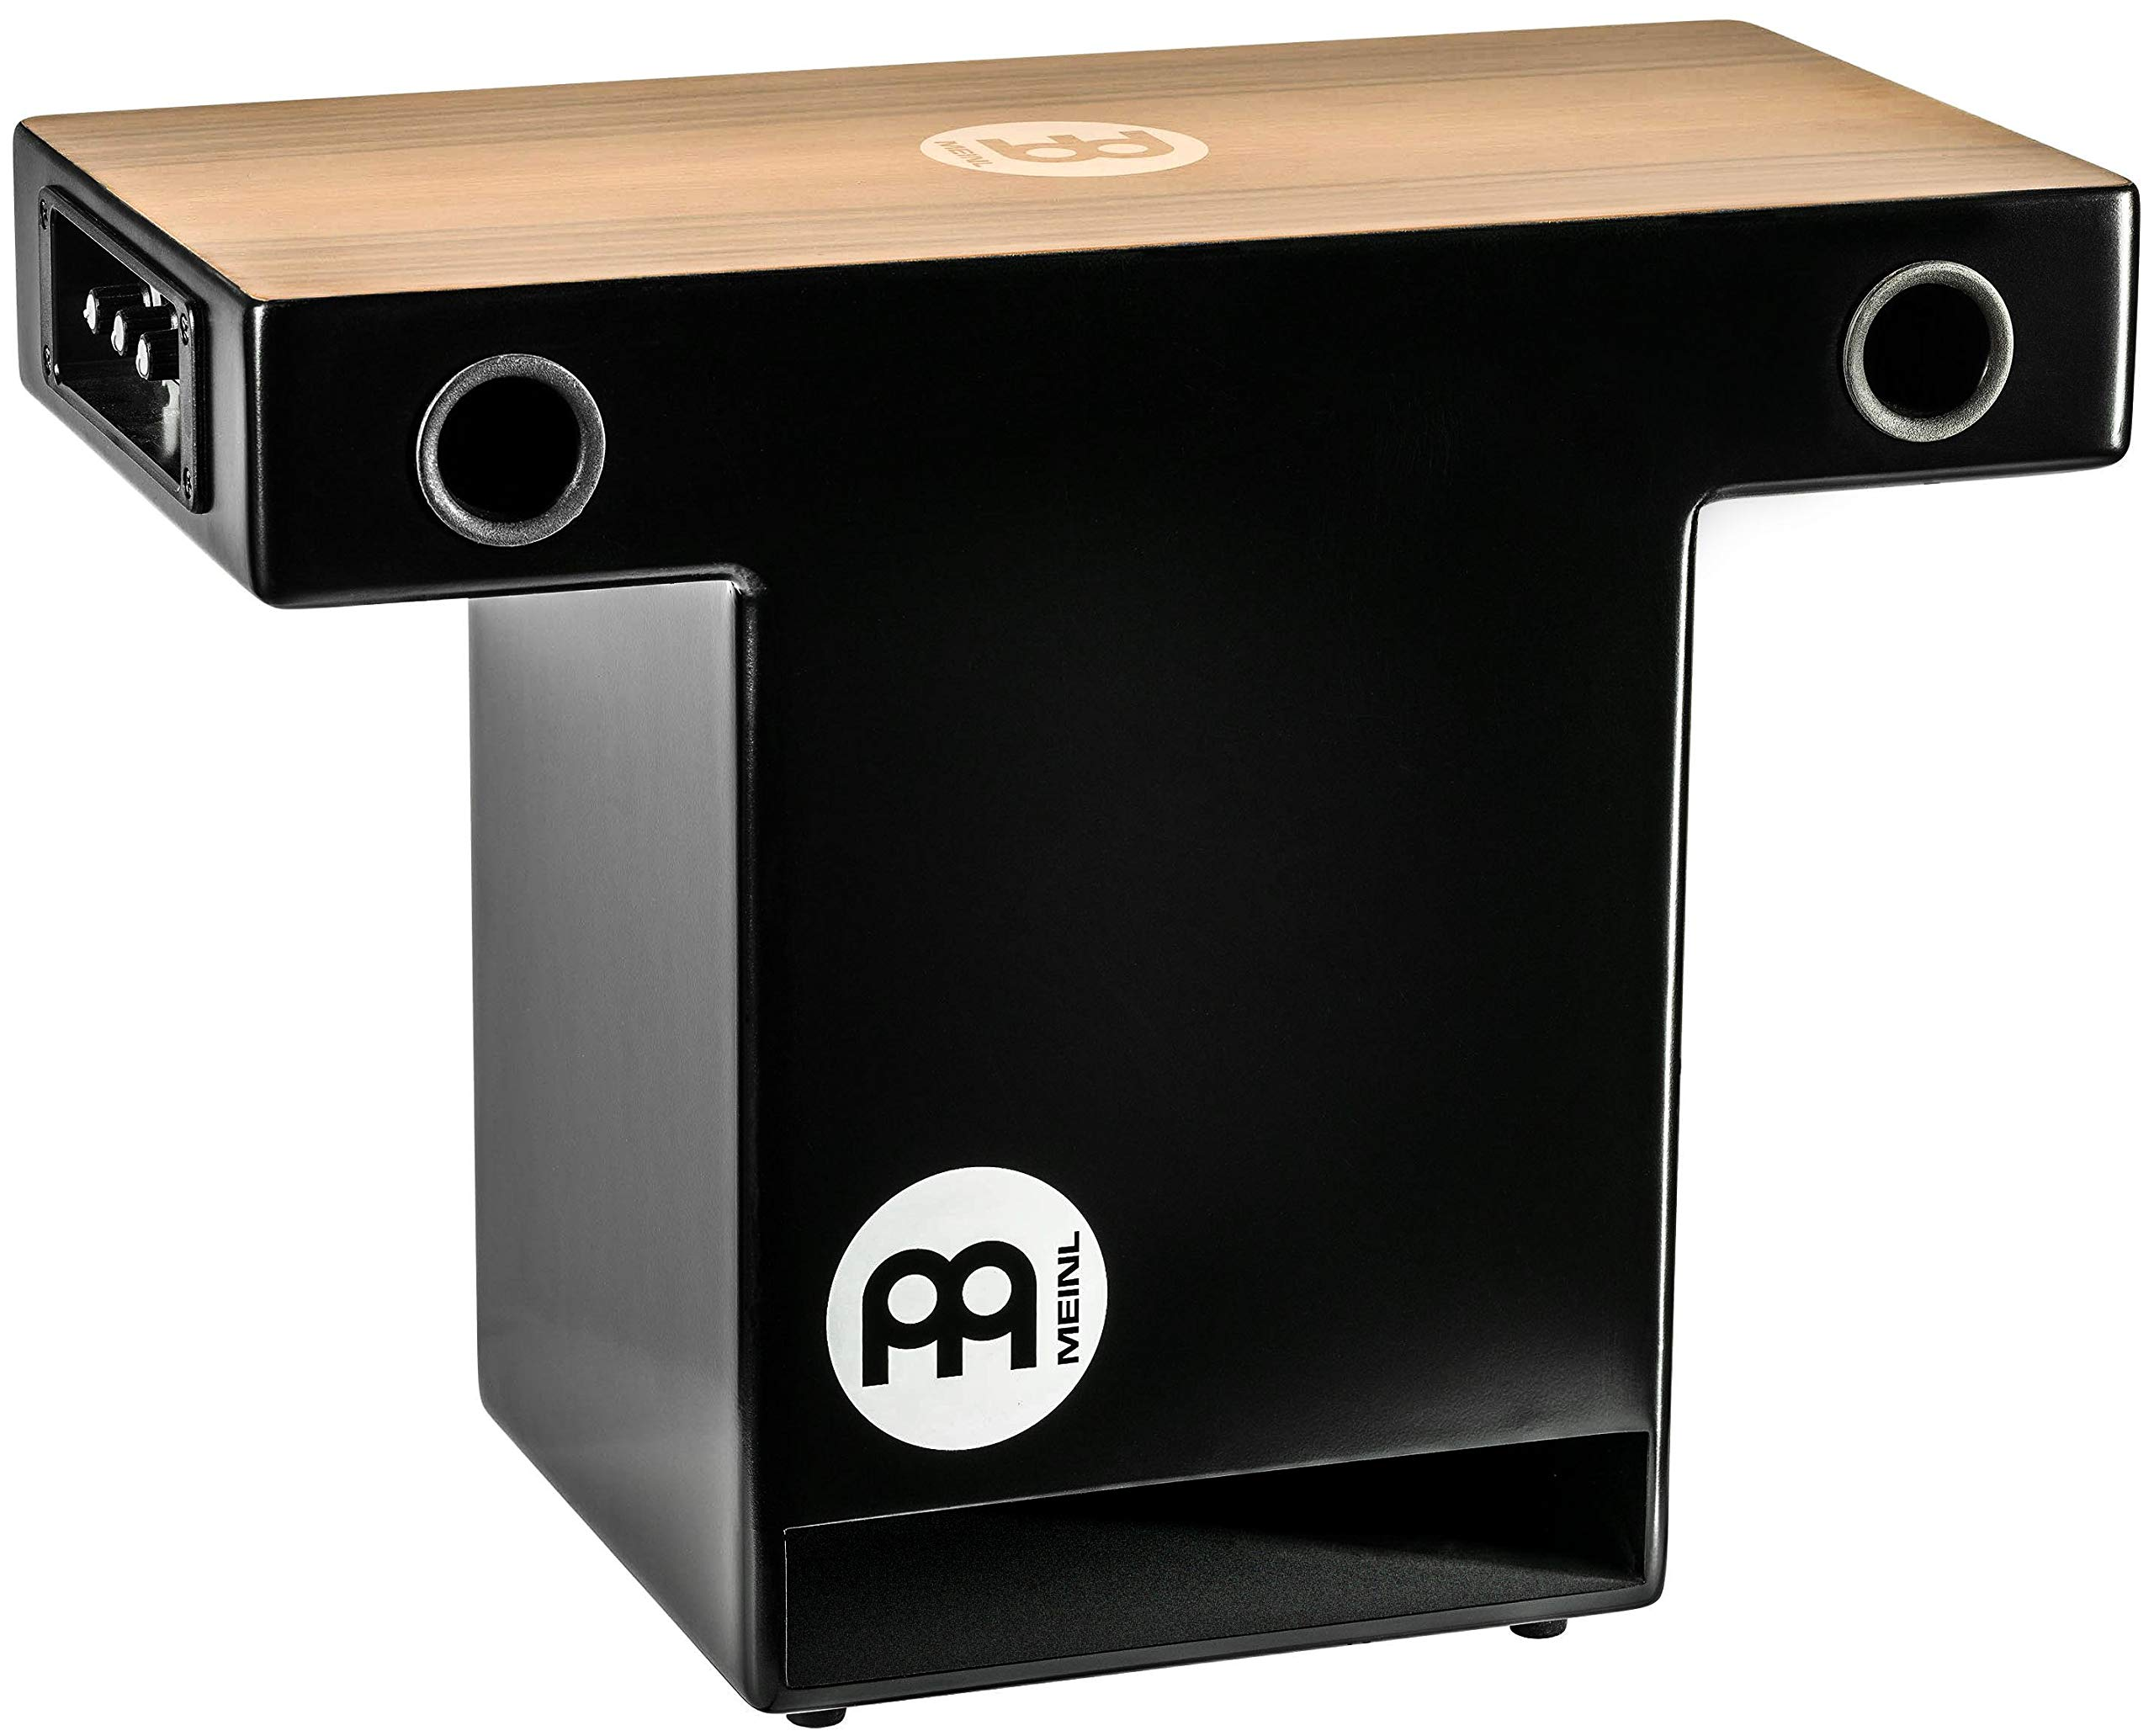 Meinl Pickup Slaptop Cajon Box Drum with Internal Snares and Forward Projecting Sound Ports -NOT MADE IN CHINA - Walnut Playing Surface, 2-YEAR WARRANTY (PTOPCAJ2WN) by Meinl Percussion (Image #1)